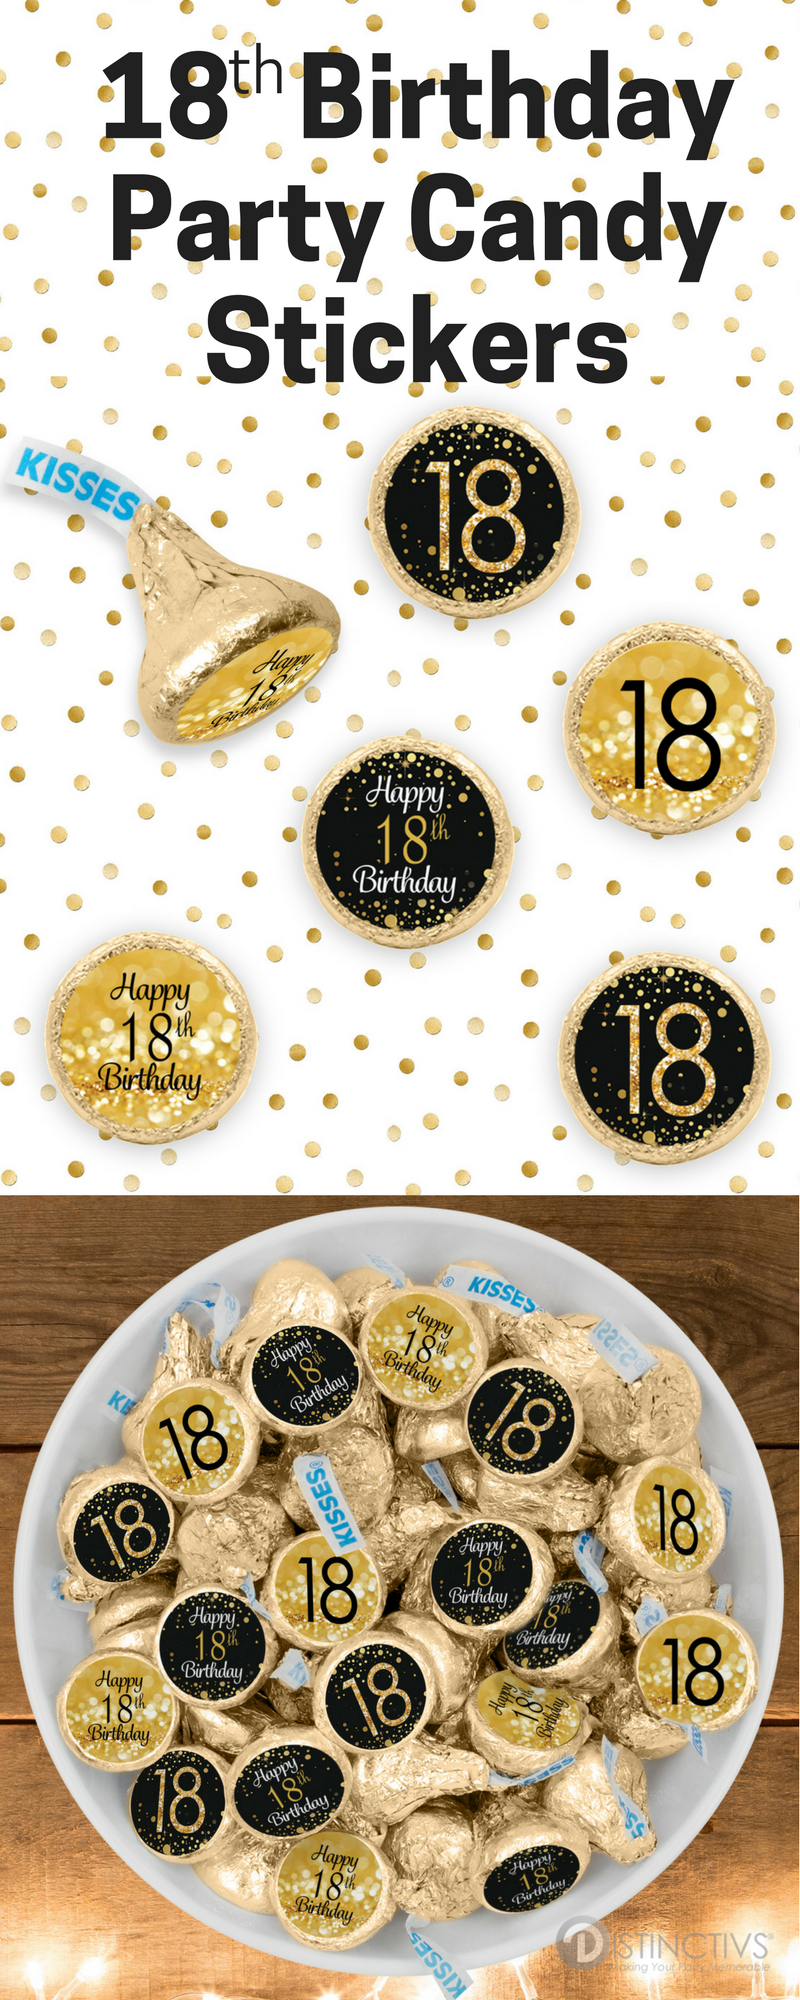 Black And Gold 18th Birthday Party Favor Stickers 324 Count